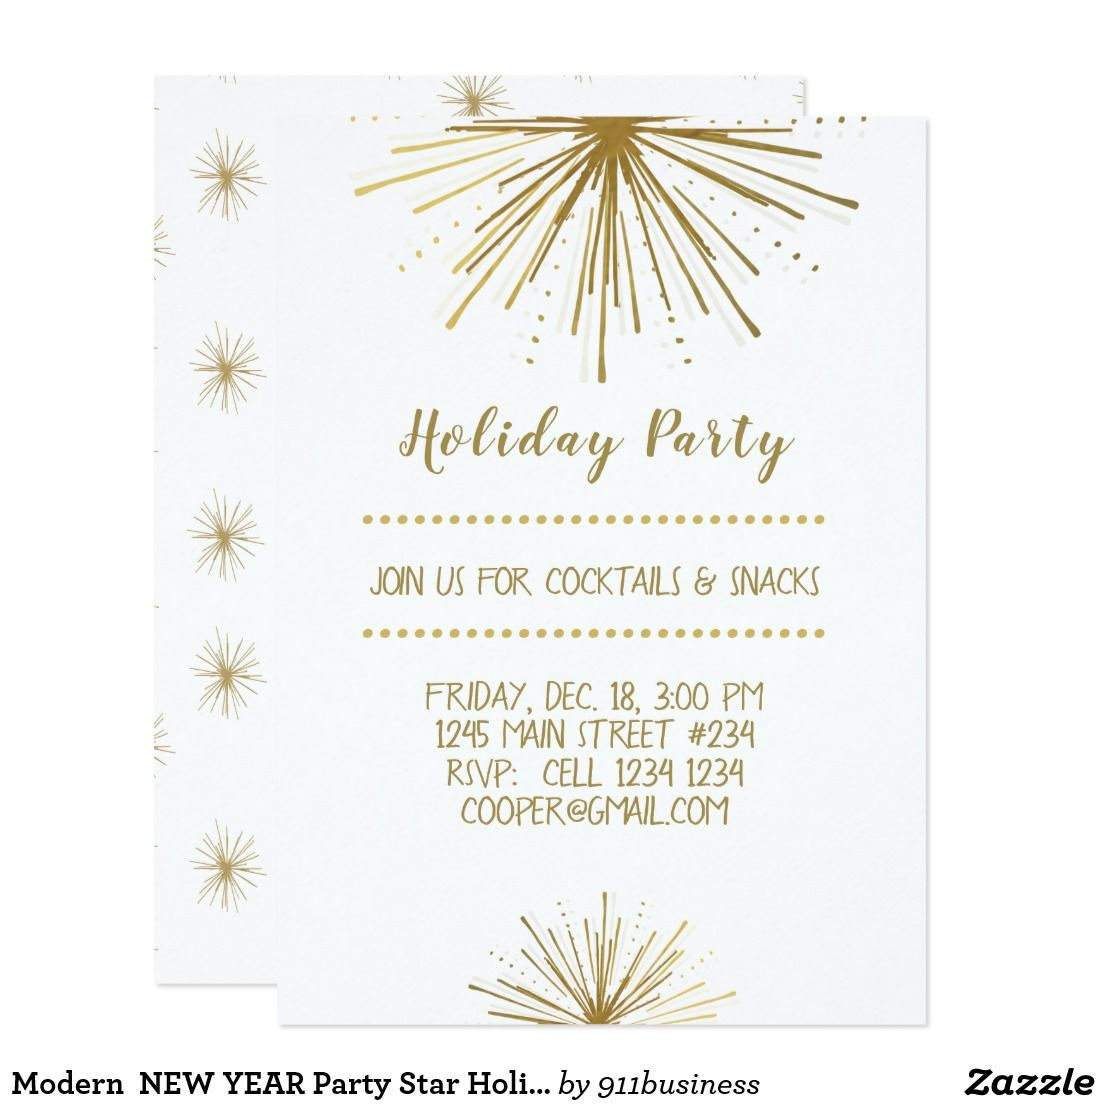 Modern New Year Party Star Holiday Party Invitation Zazzle Com